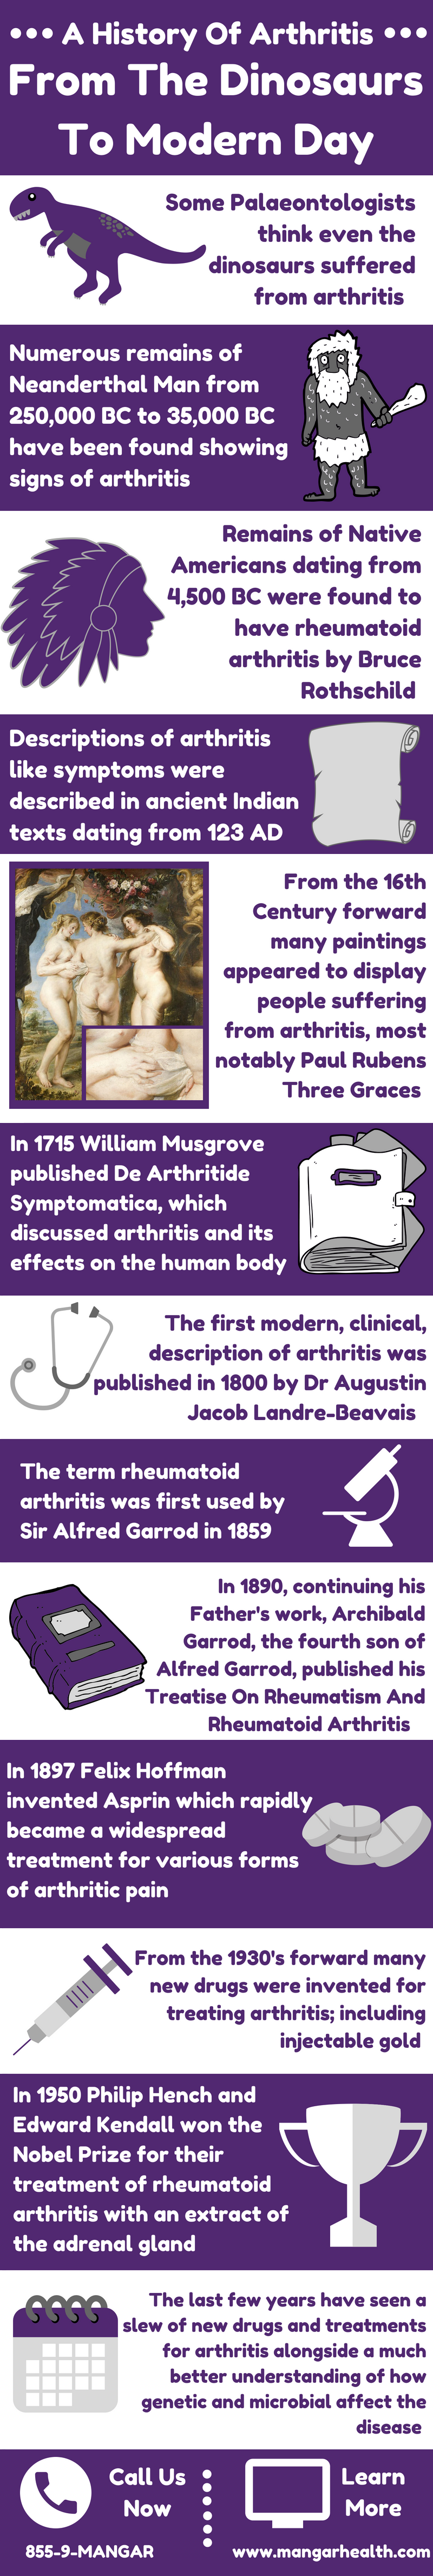 us-history-of-arthritis